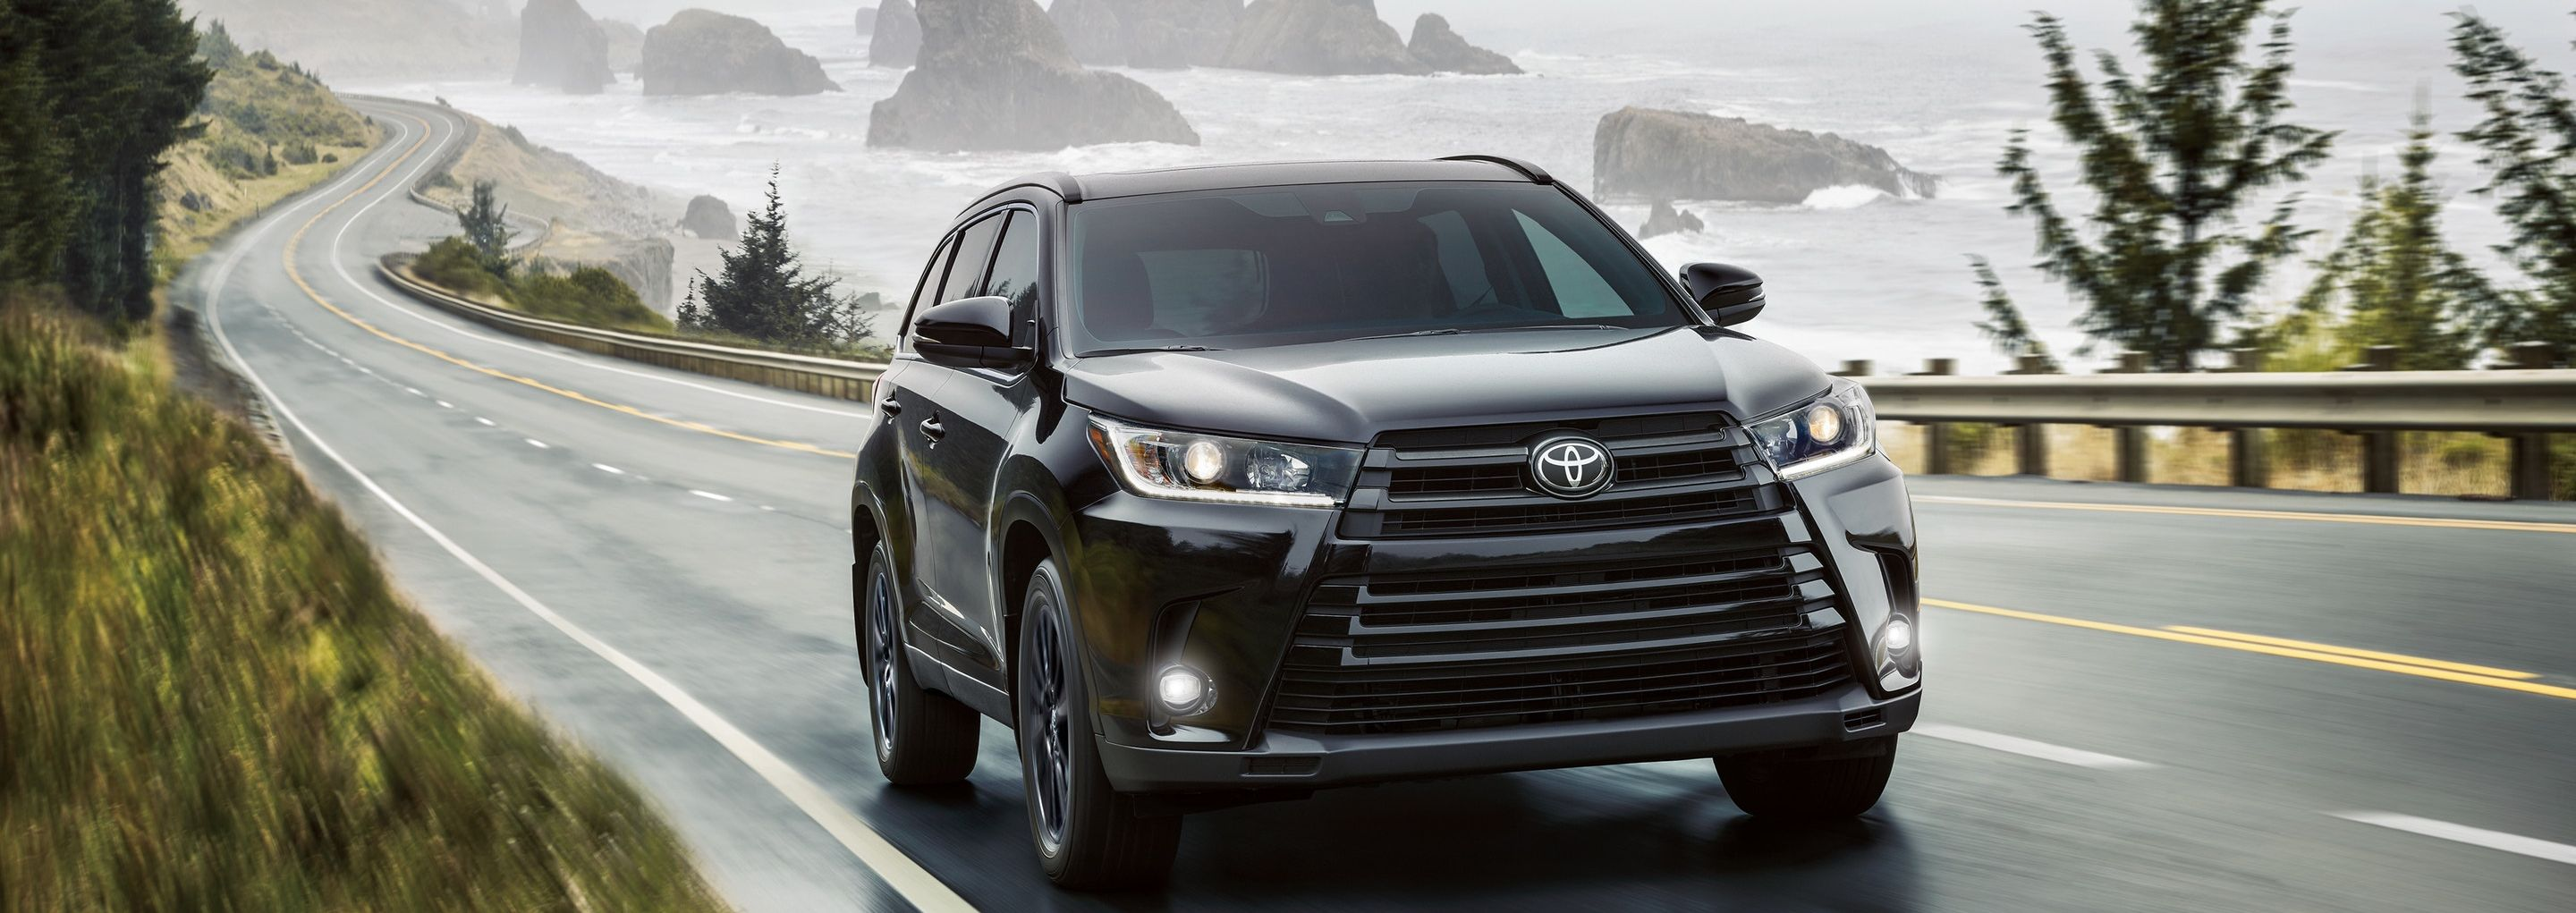 2019 Toyota Highlander for Sale near Beloit, WI